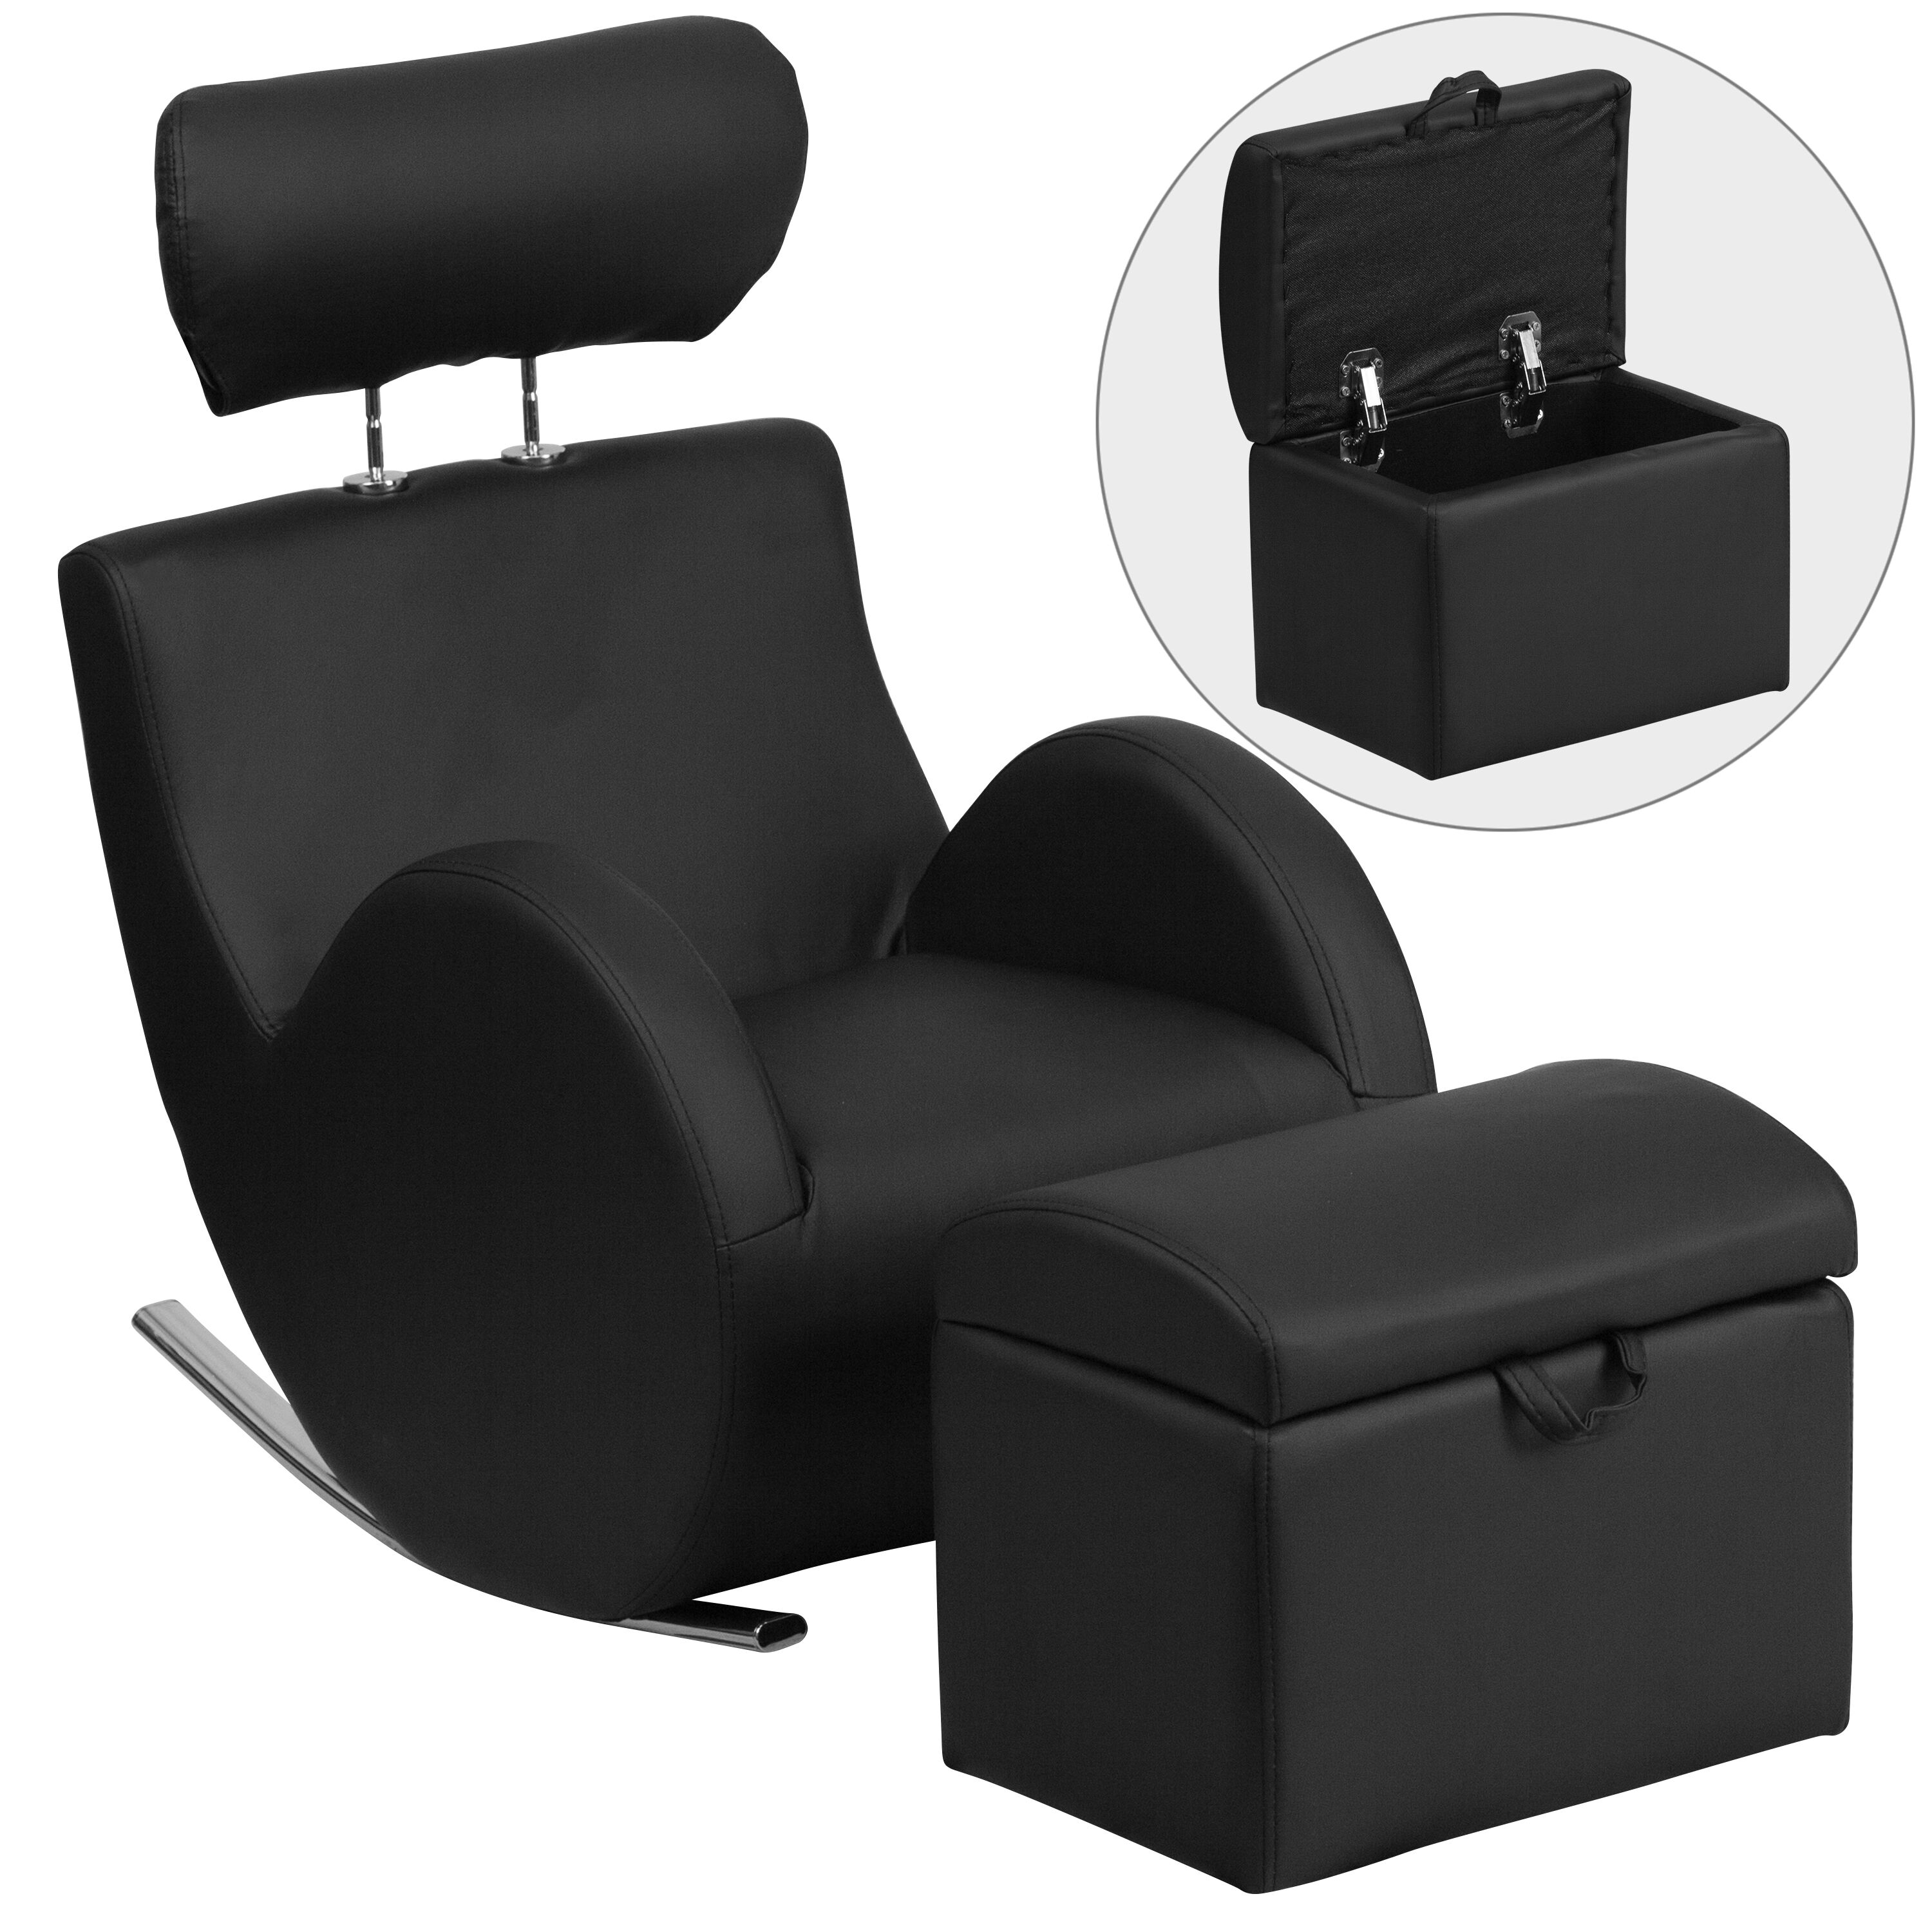 ... Our HERCULES Series Black Vinyl Rocking Chair With Storage Ottoman Is  On Sale Now.